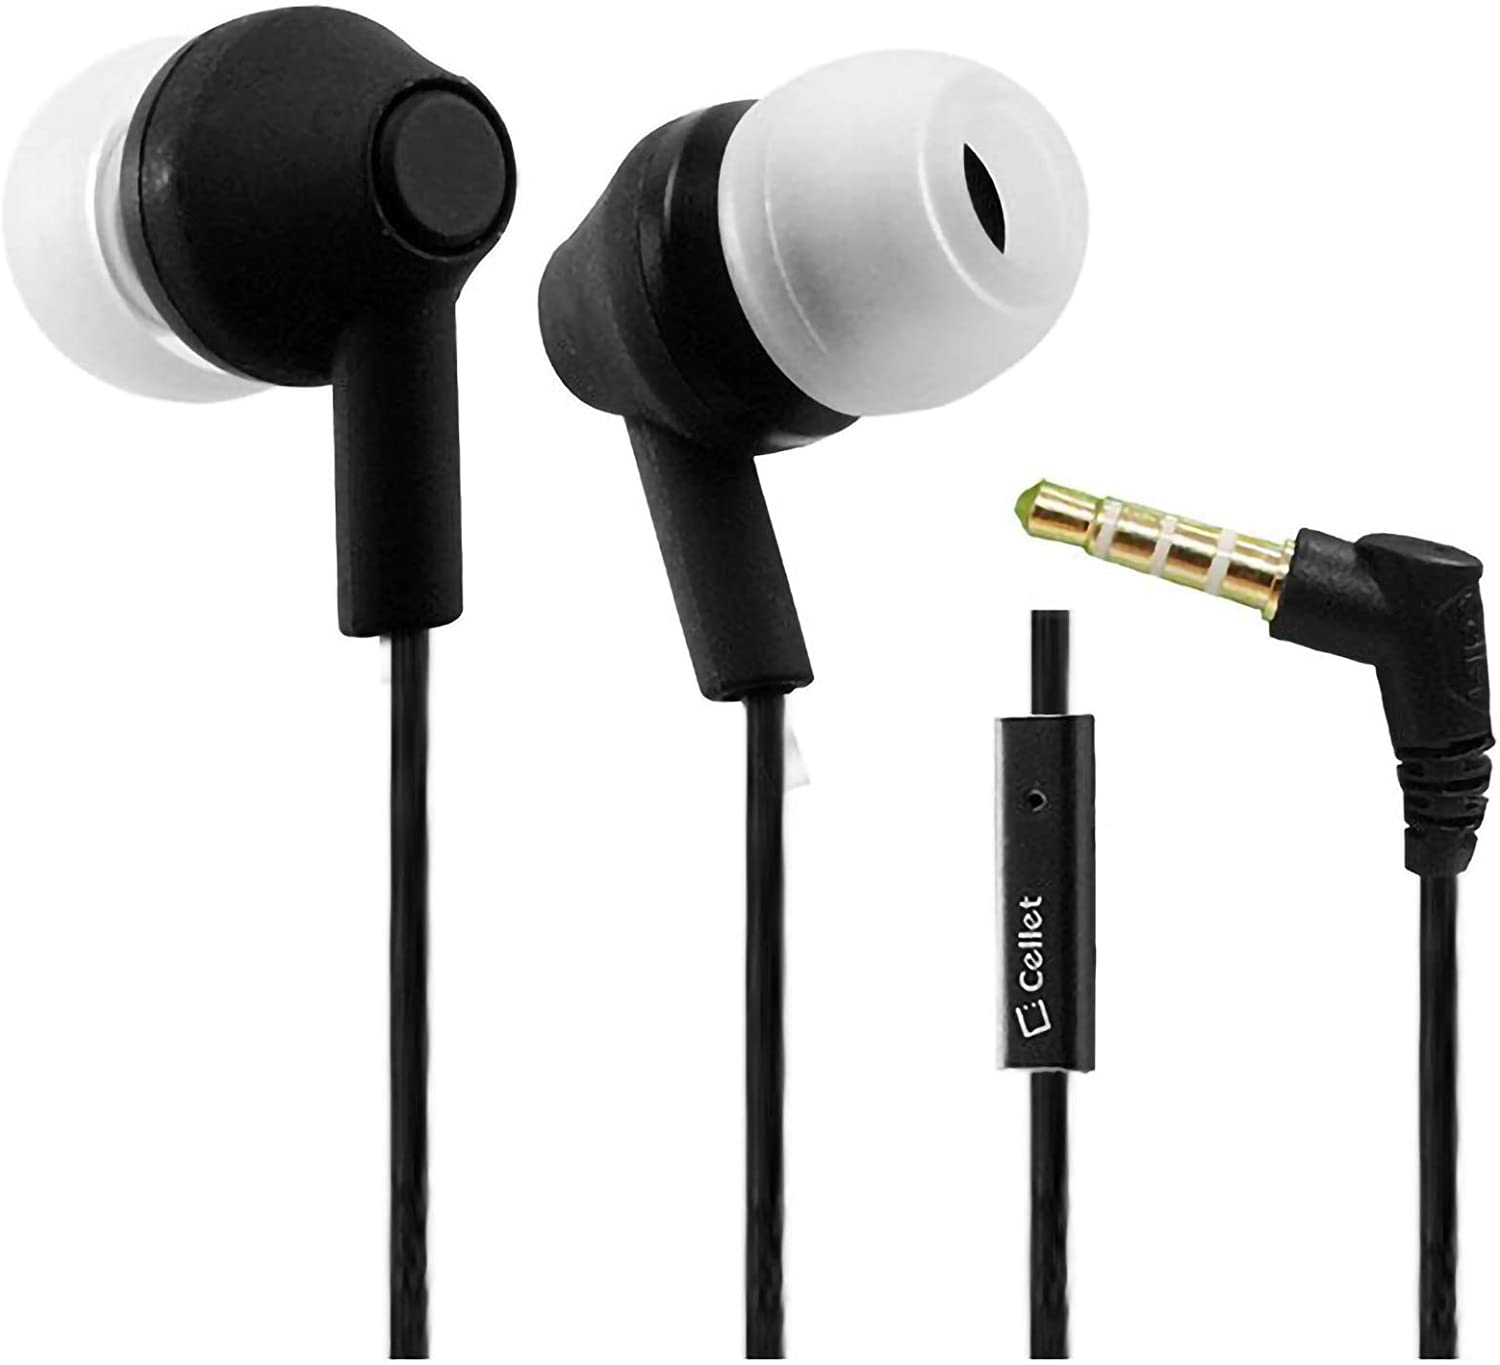 PRO Earbuds Works for Apple iPod Nano 7th Generation Encore+ Hands-Free Built-in Microphone and Crisp Digitally Clear Audio! (3.5mm, 1/8, 3.5ft)